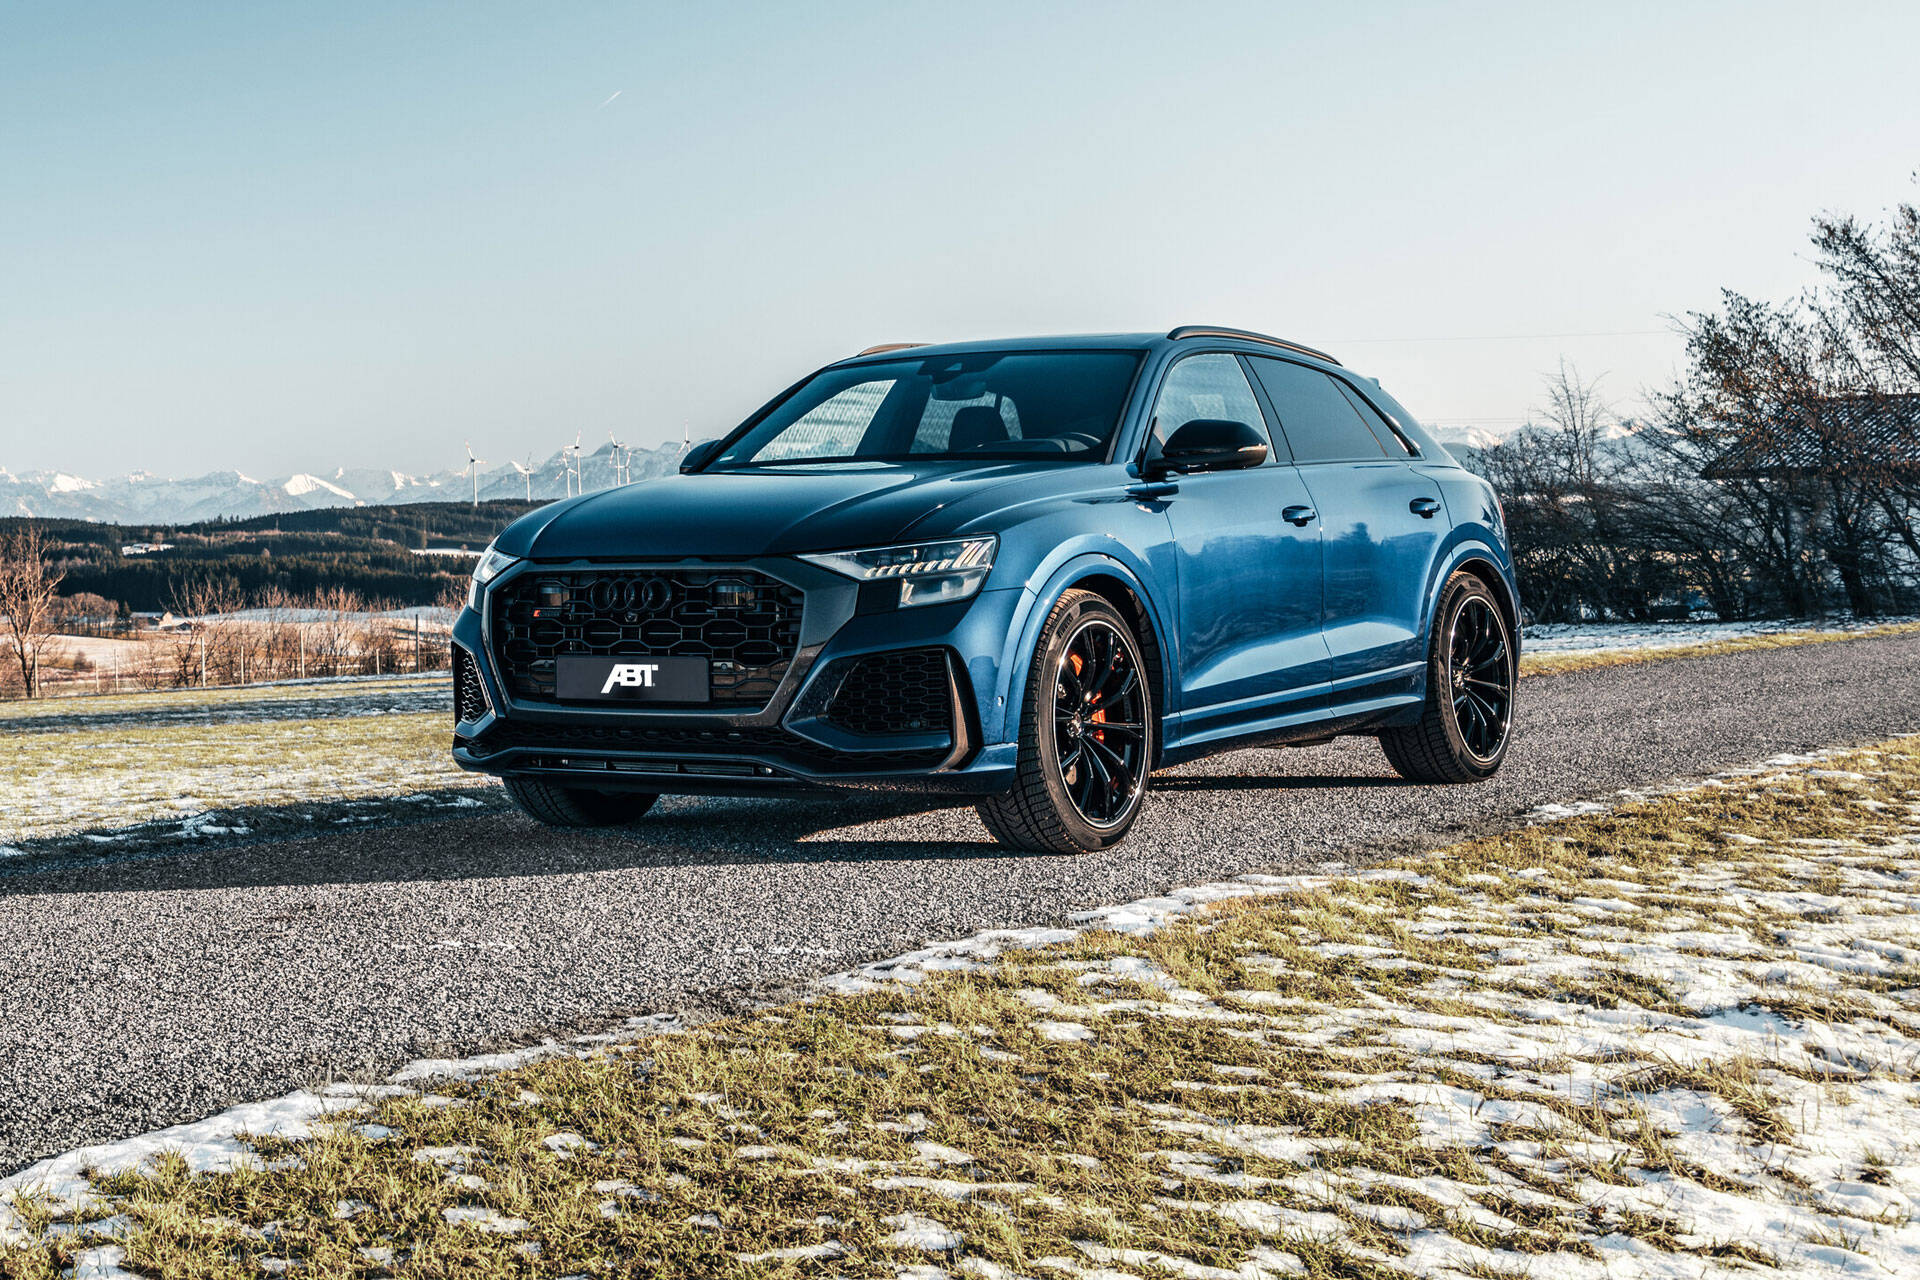 2021 Audi RS Q8 gets ABT power upgrade of up to 690 HP ...